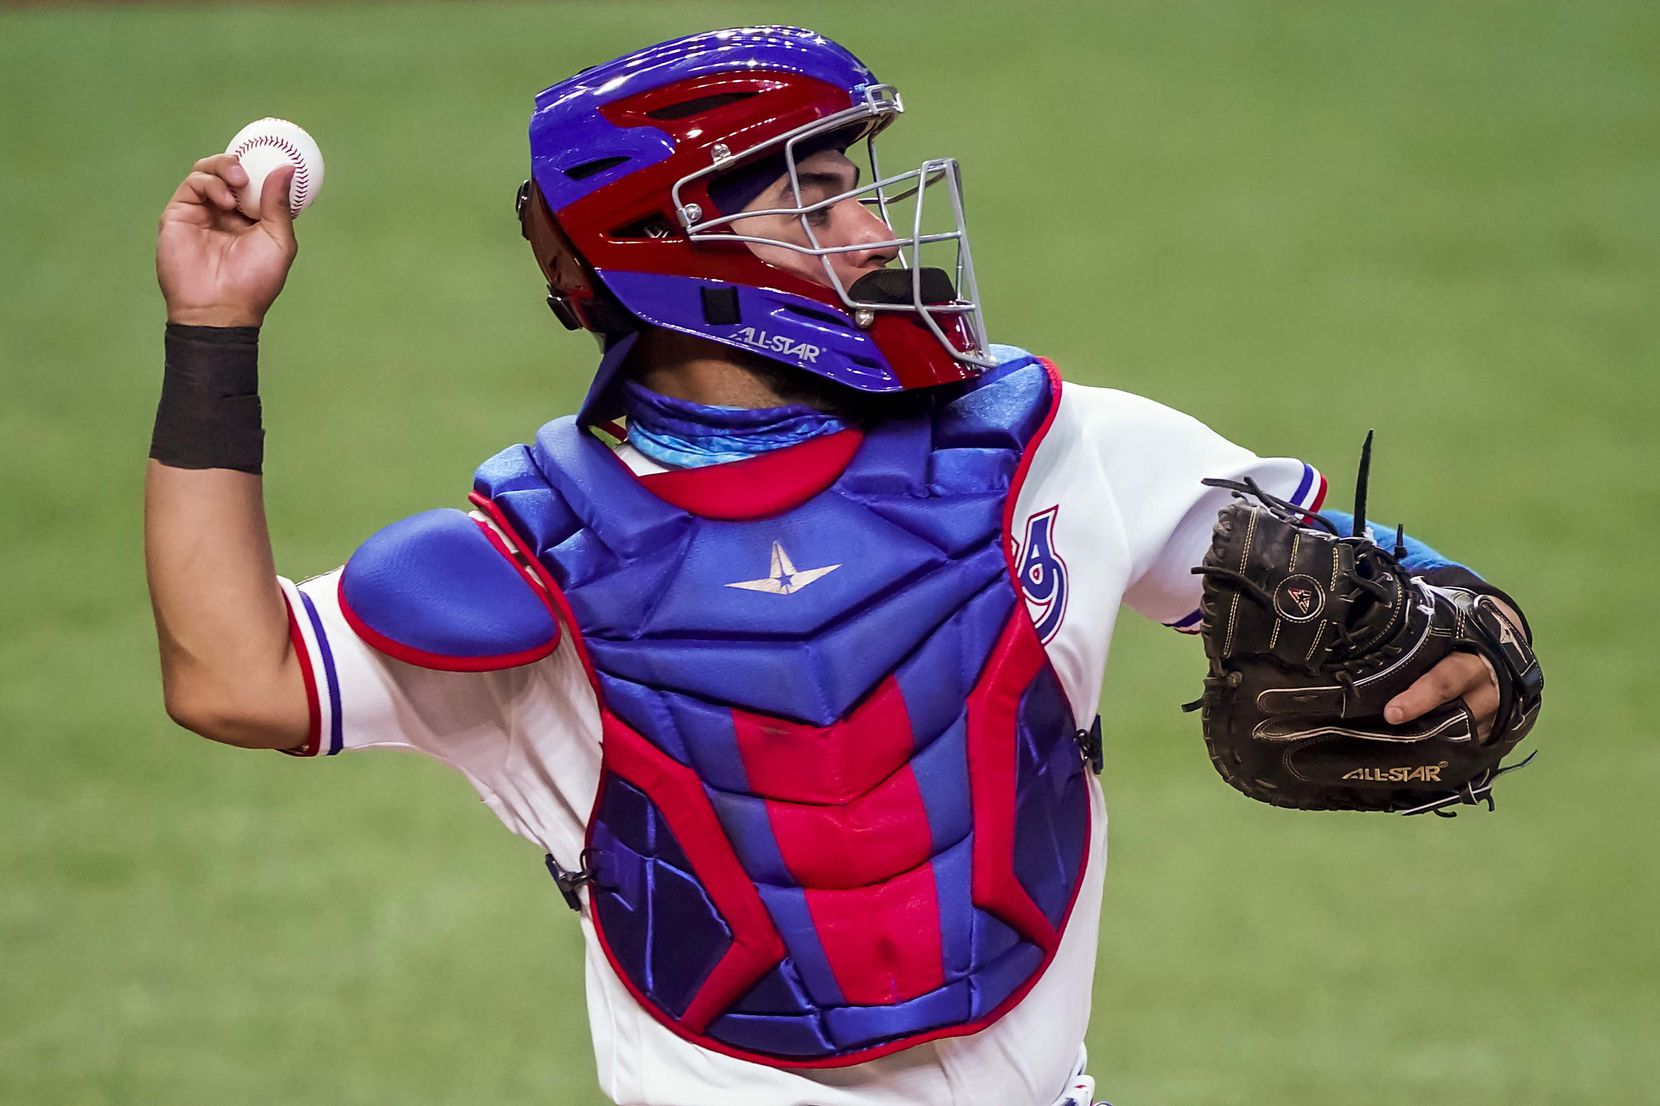 Catcher Jose Trevino makes throw to second base during Texas Rangers Summer Camp at Globe Life Field on Thursday, July 16, 2020. (Smiley N. Pool/The Dallas Morning News)